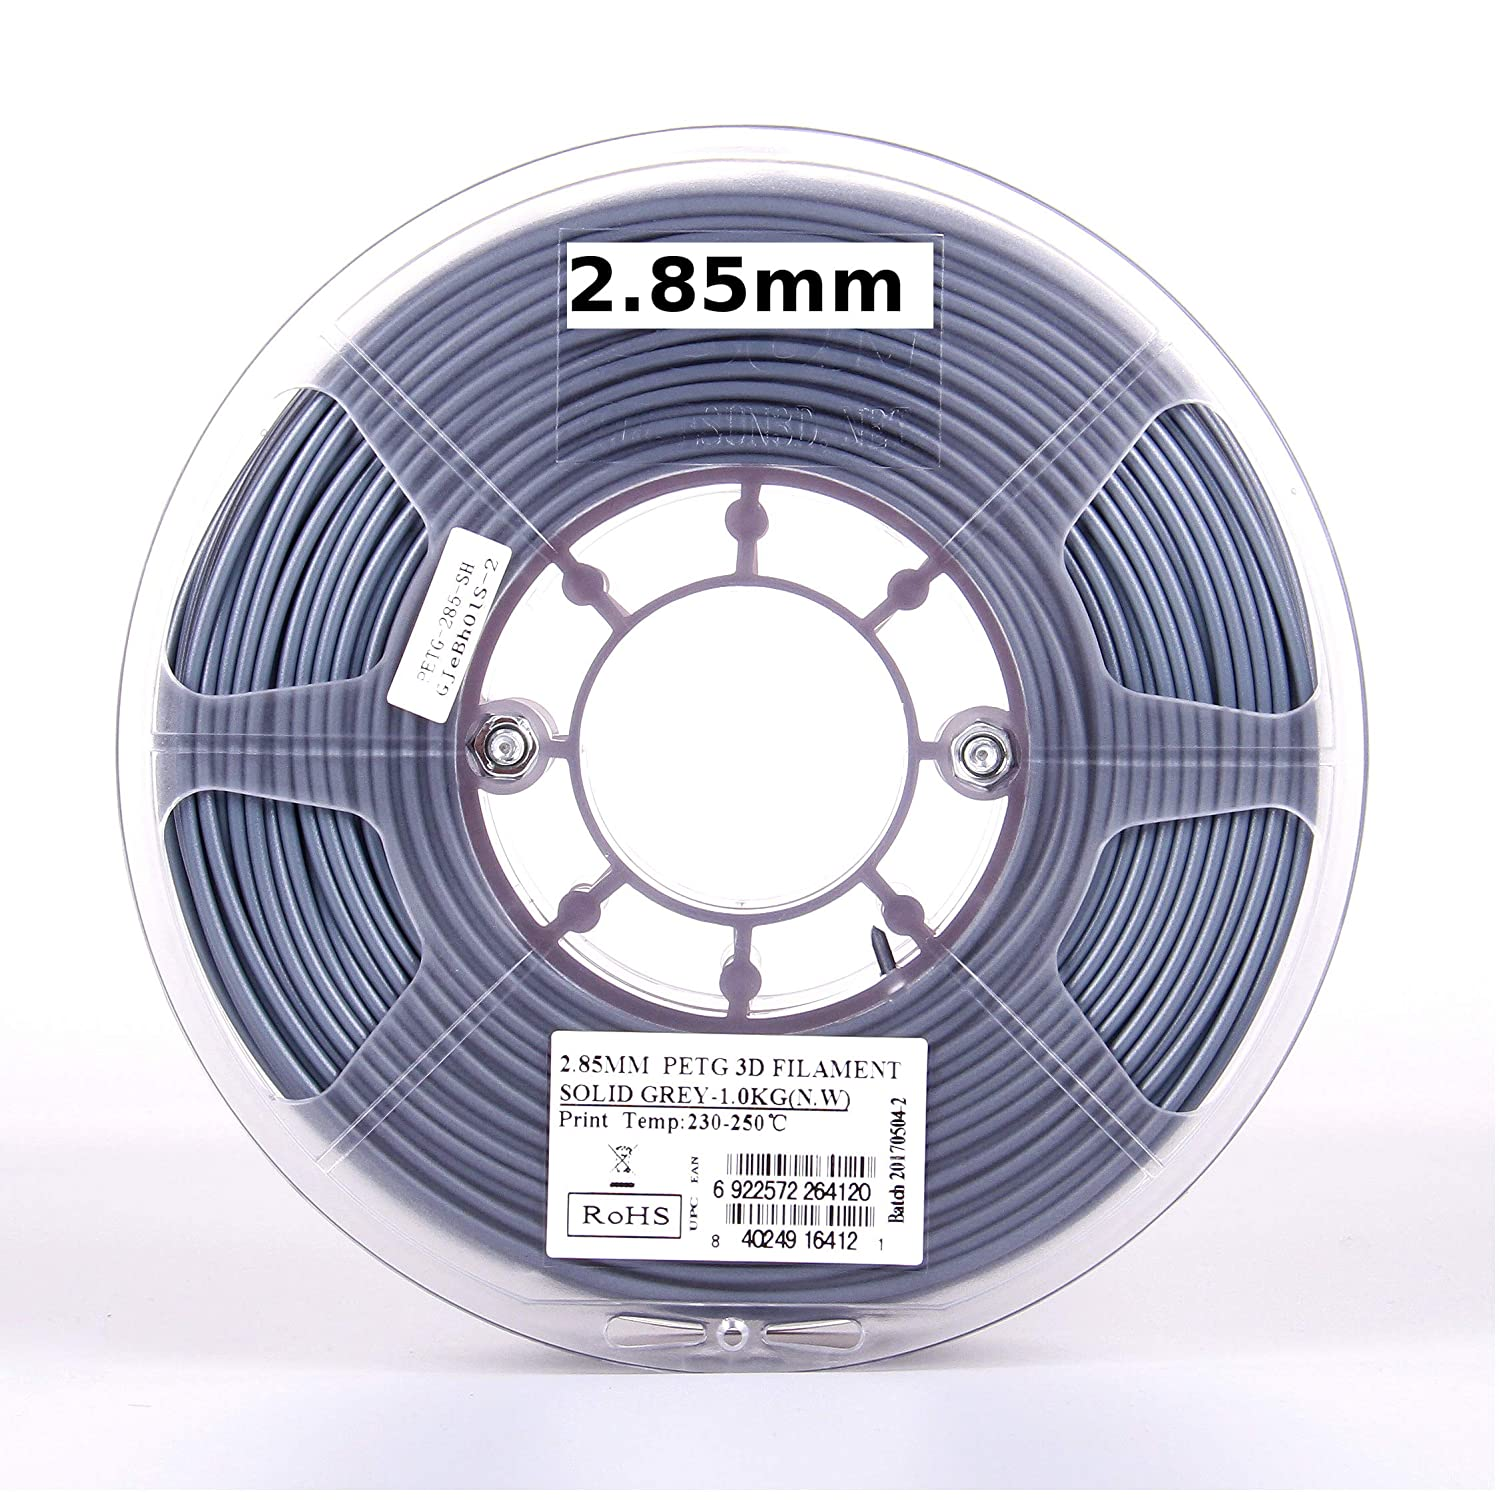 PETG 3D Printer Filament 2.2lb eSUN 3D 3mm PETG Solid Gray Filament 1kg Actual Diameter 2.85mm +//- 0.05mm Solid Opaque Gray IG-C-PETG300SH1